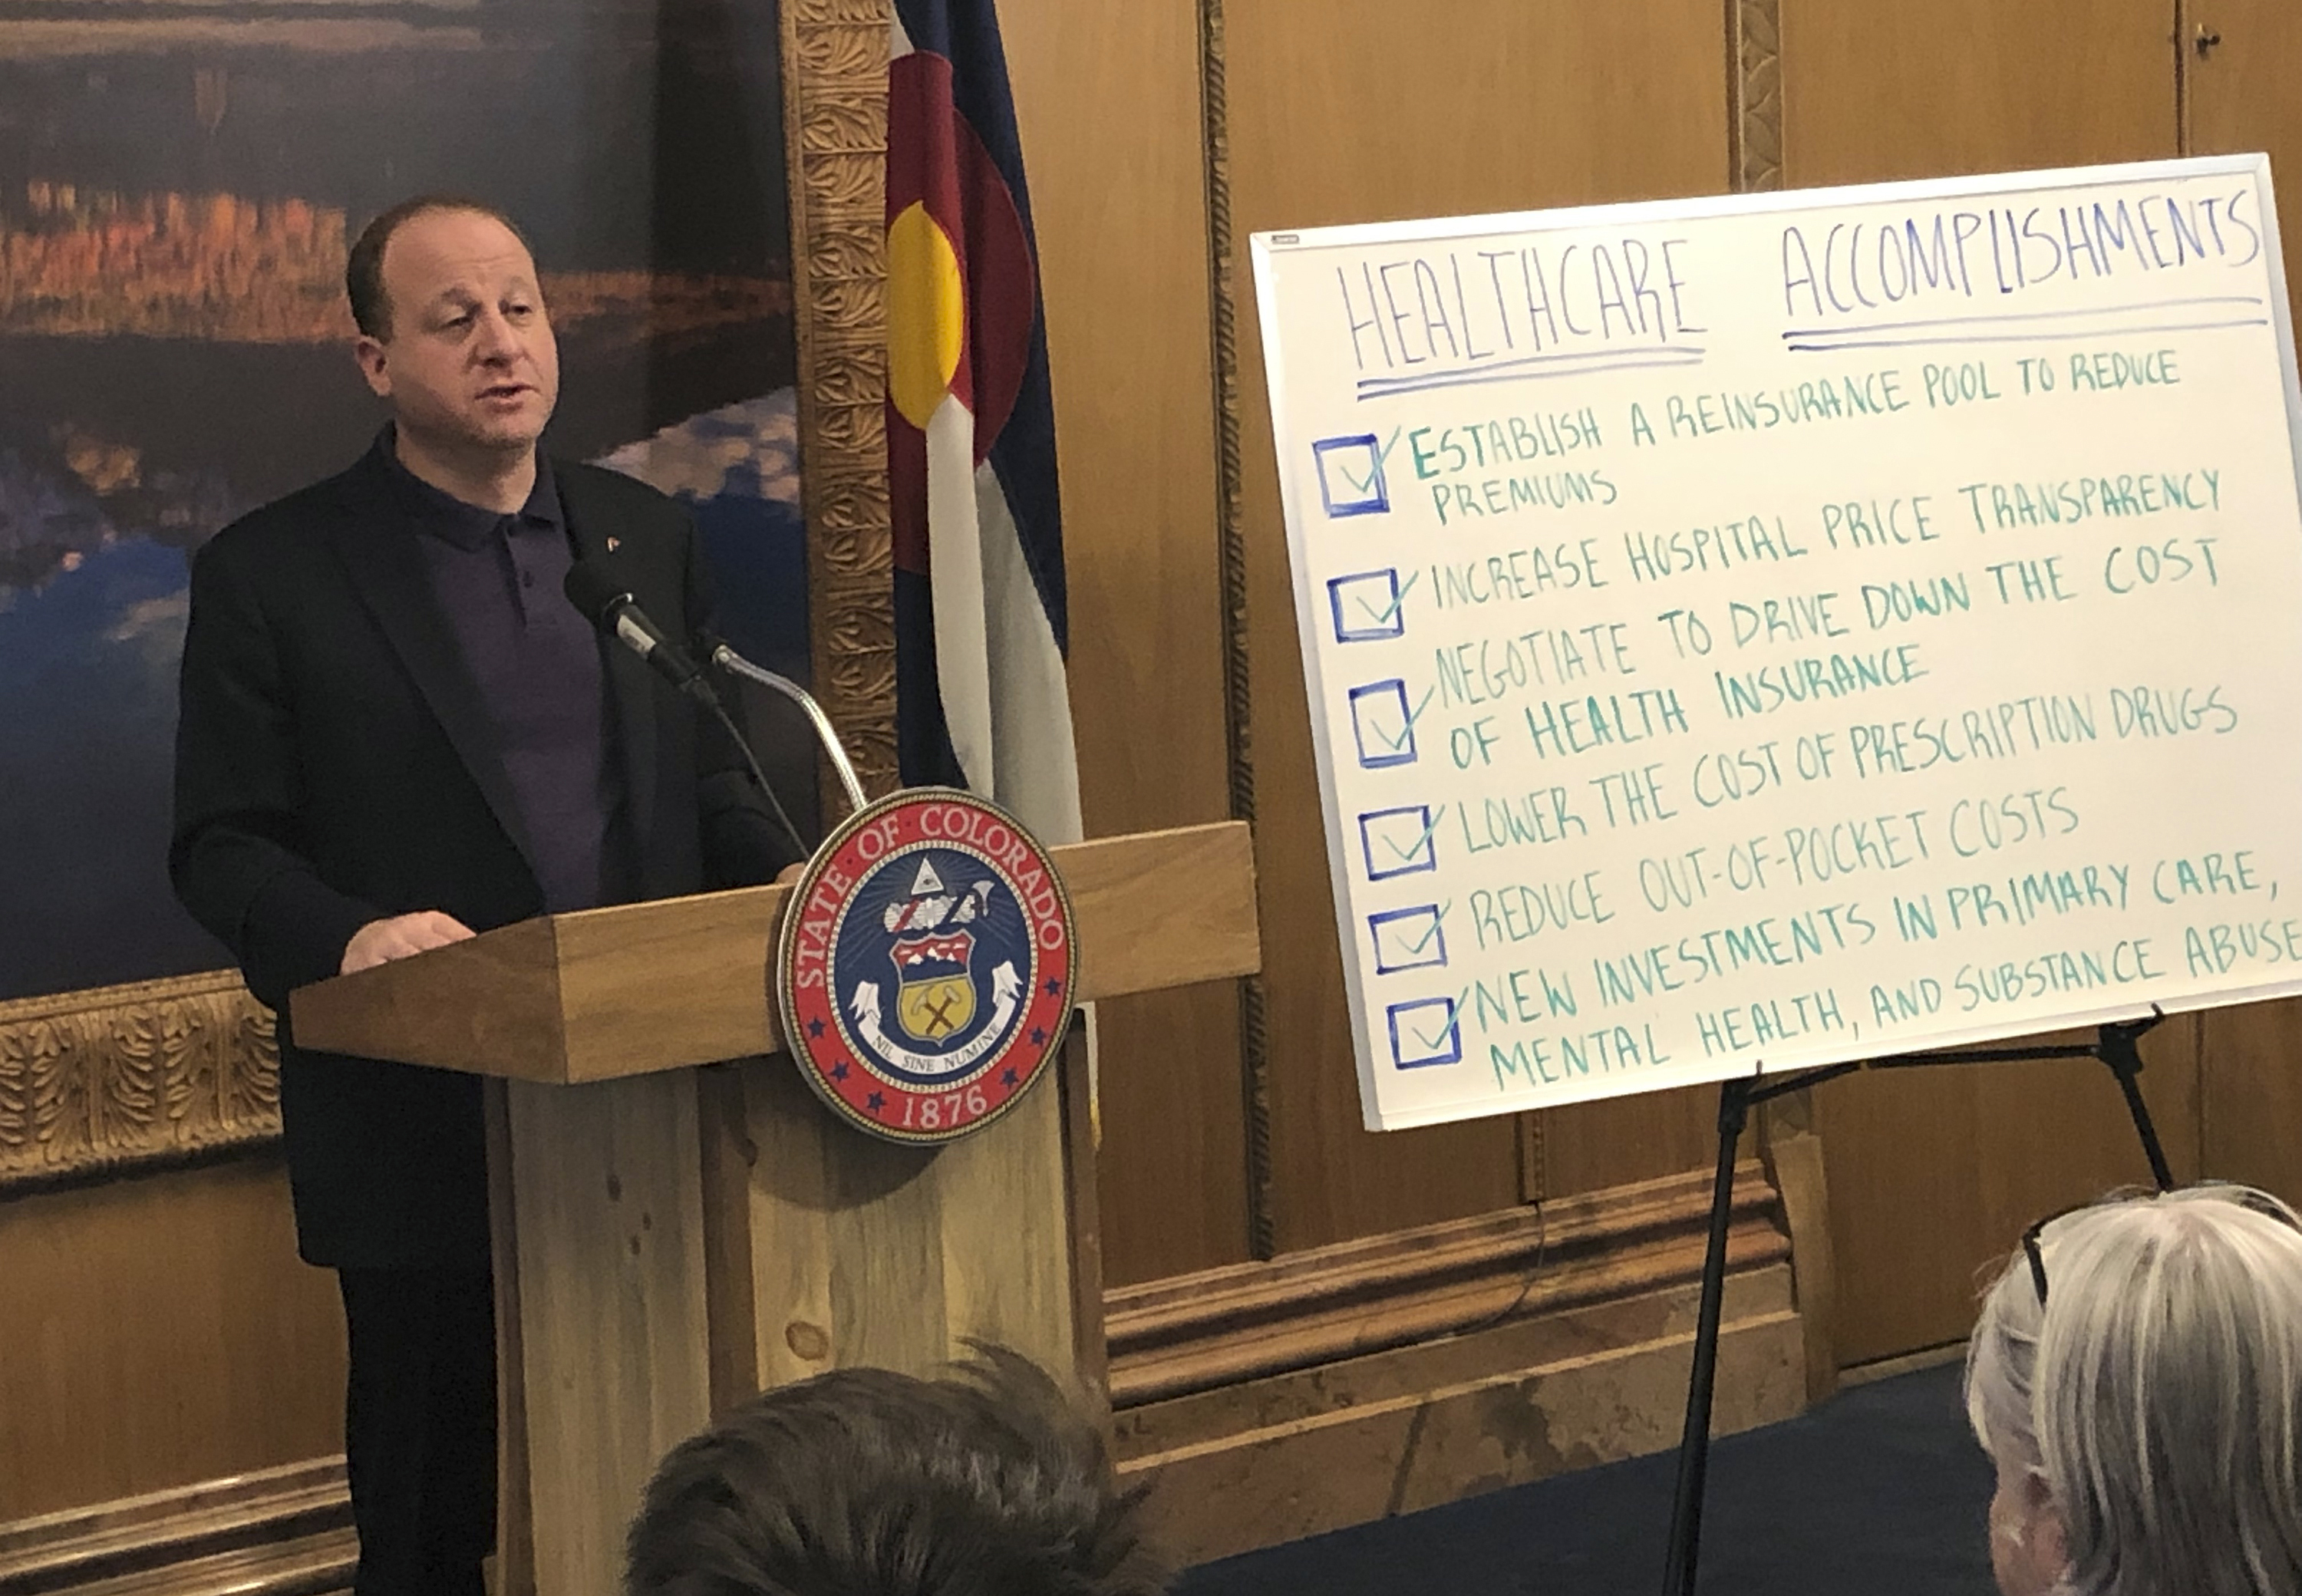 Colorado Gov. Jared Polis touts the Democrat-led legislature's accomplishments in tackling health care costs at a state Capitol briefing on Friday, May 3, 2019, in Denver.